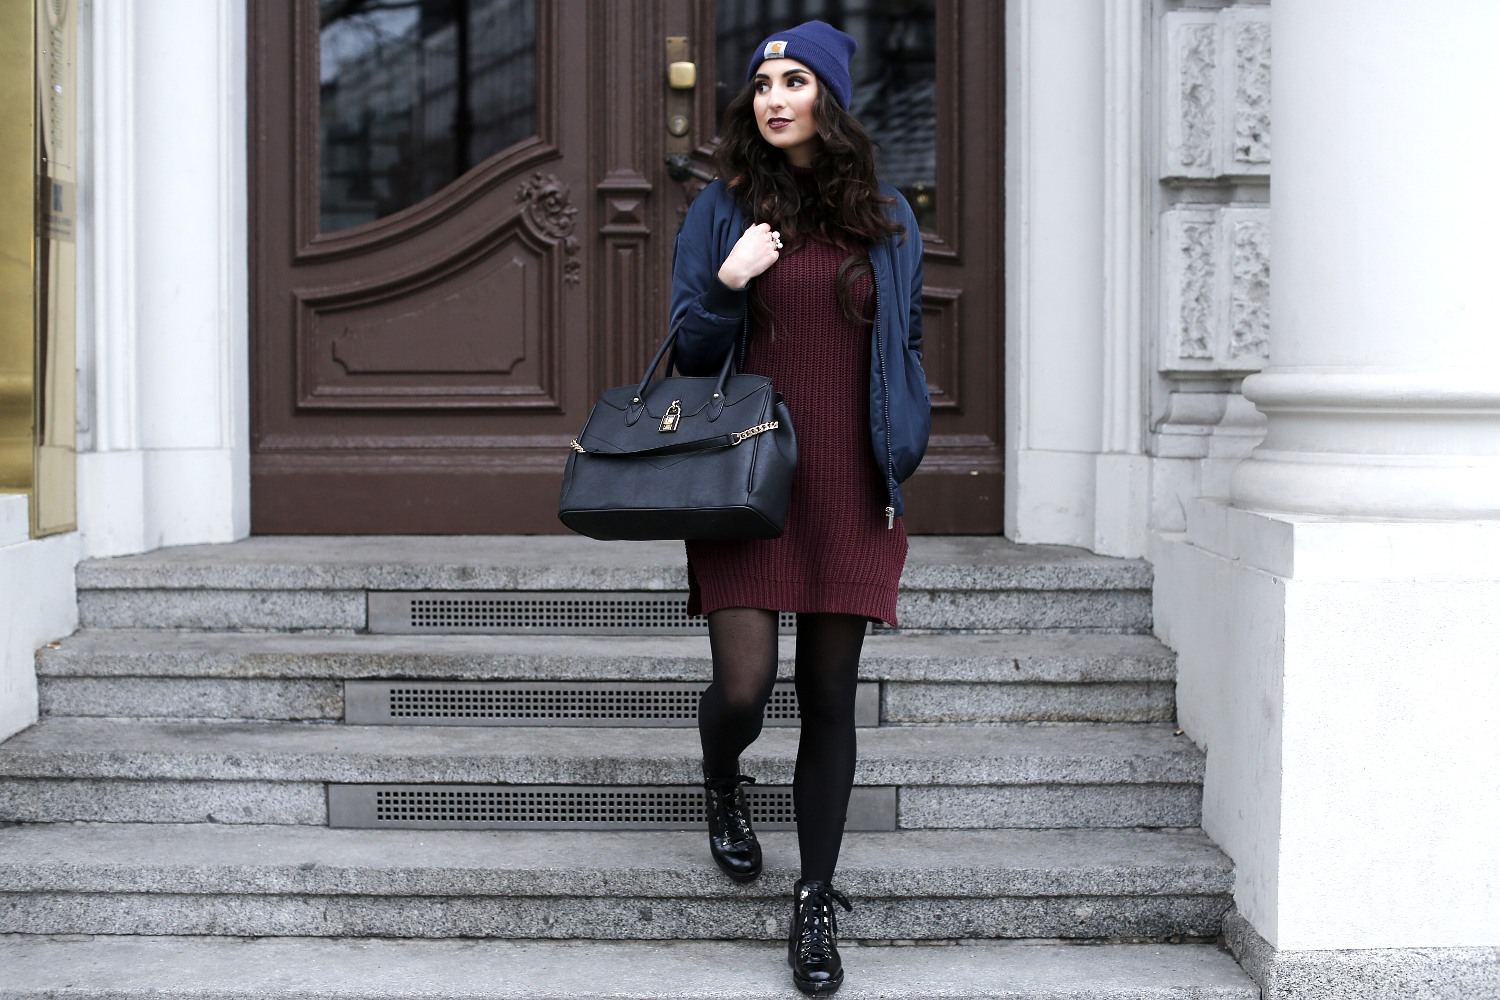 bomber jacket winter look bomber coat uterque boots outfit booties blog outfit rollneck dress turtleneck carhartt beanie streetstyle justfab bag review quality samieze hoch komplett